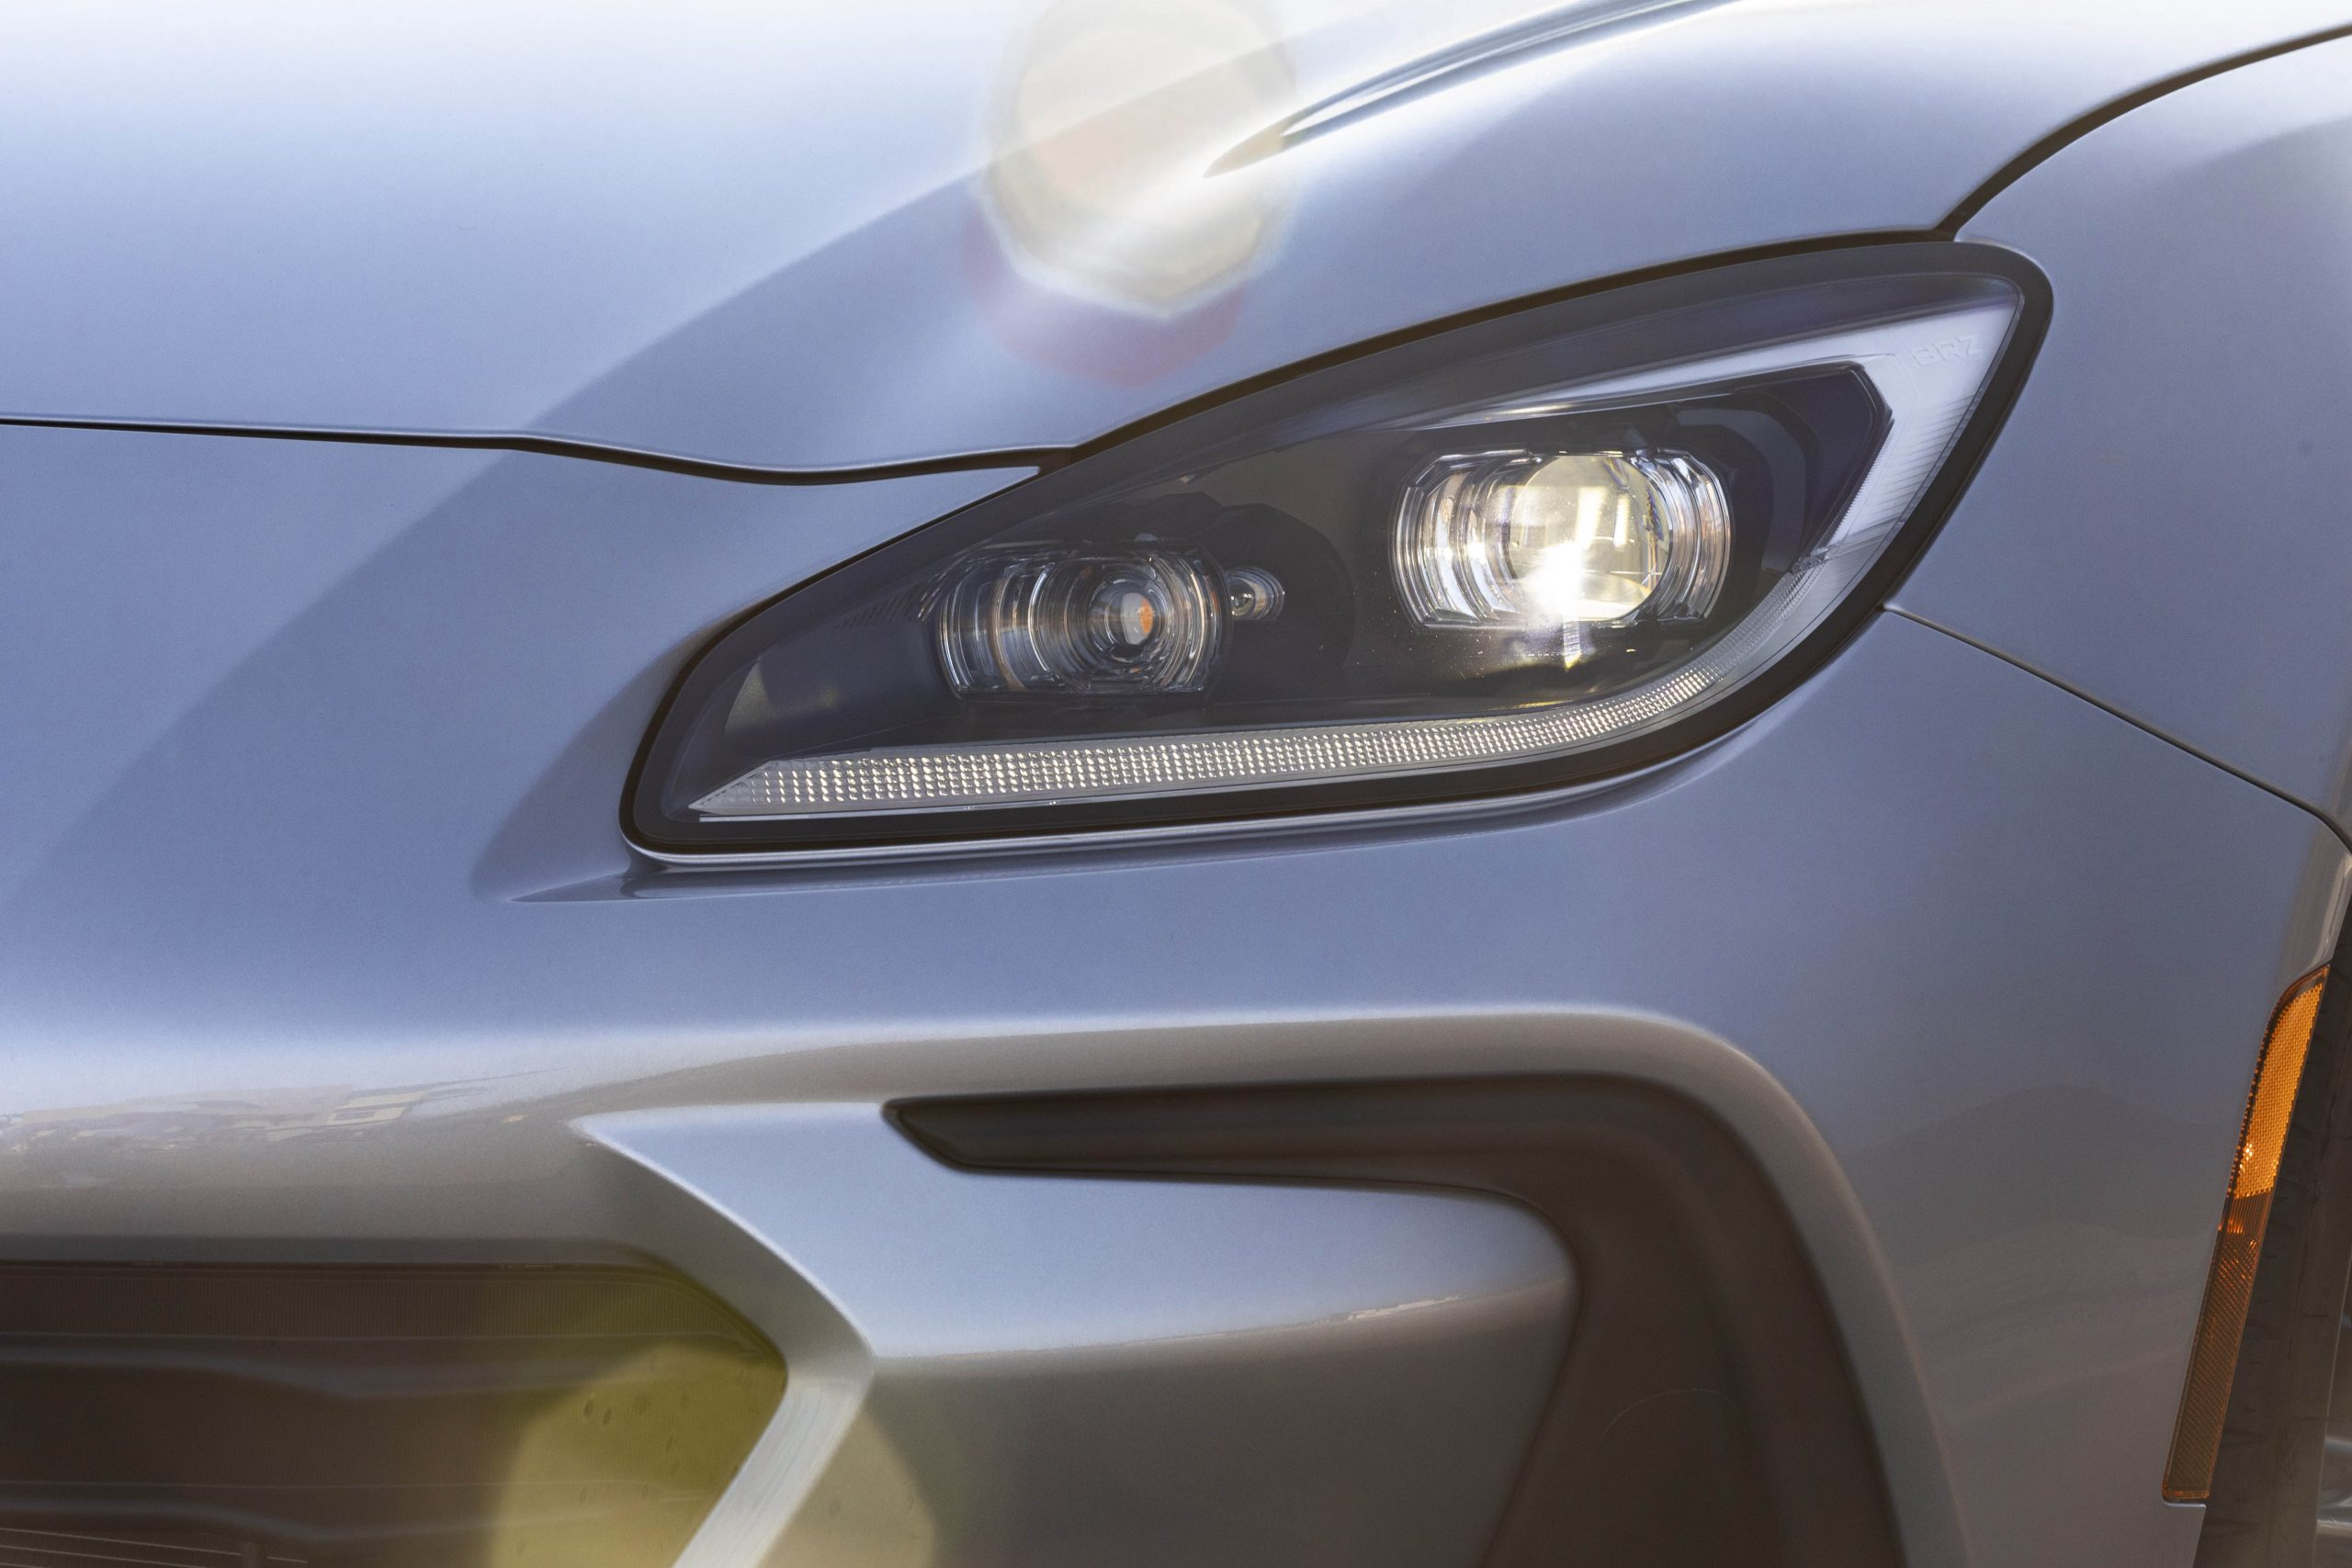 New 2022 Subaru BRZ headlight detail